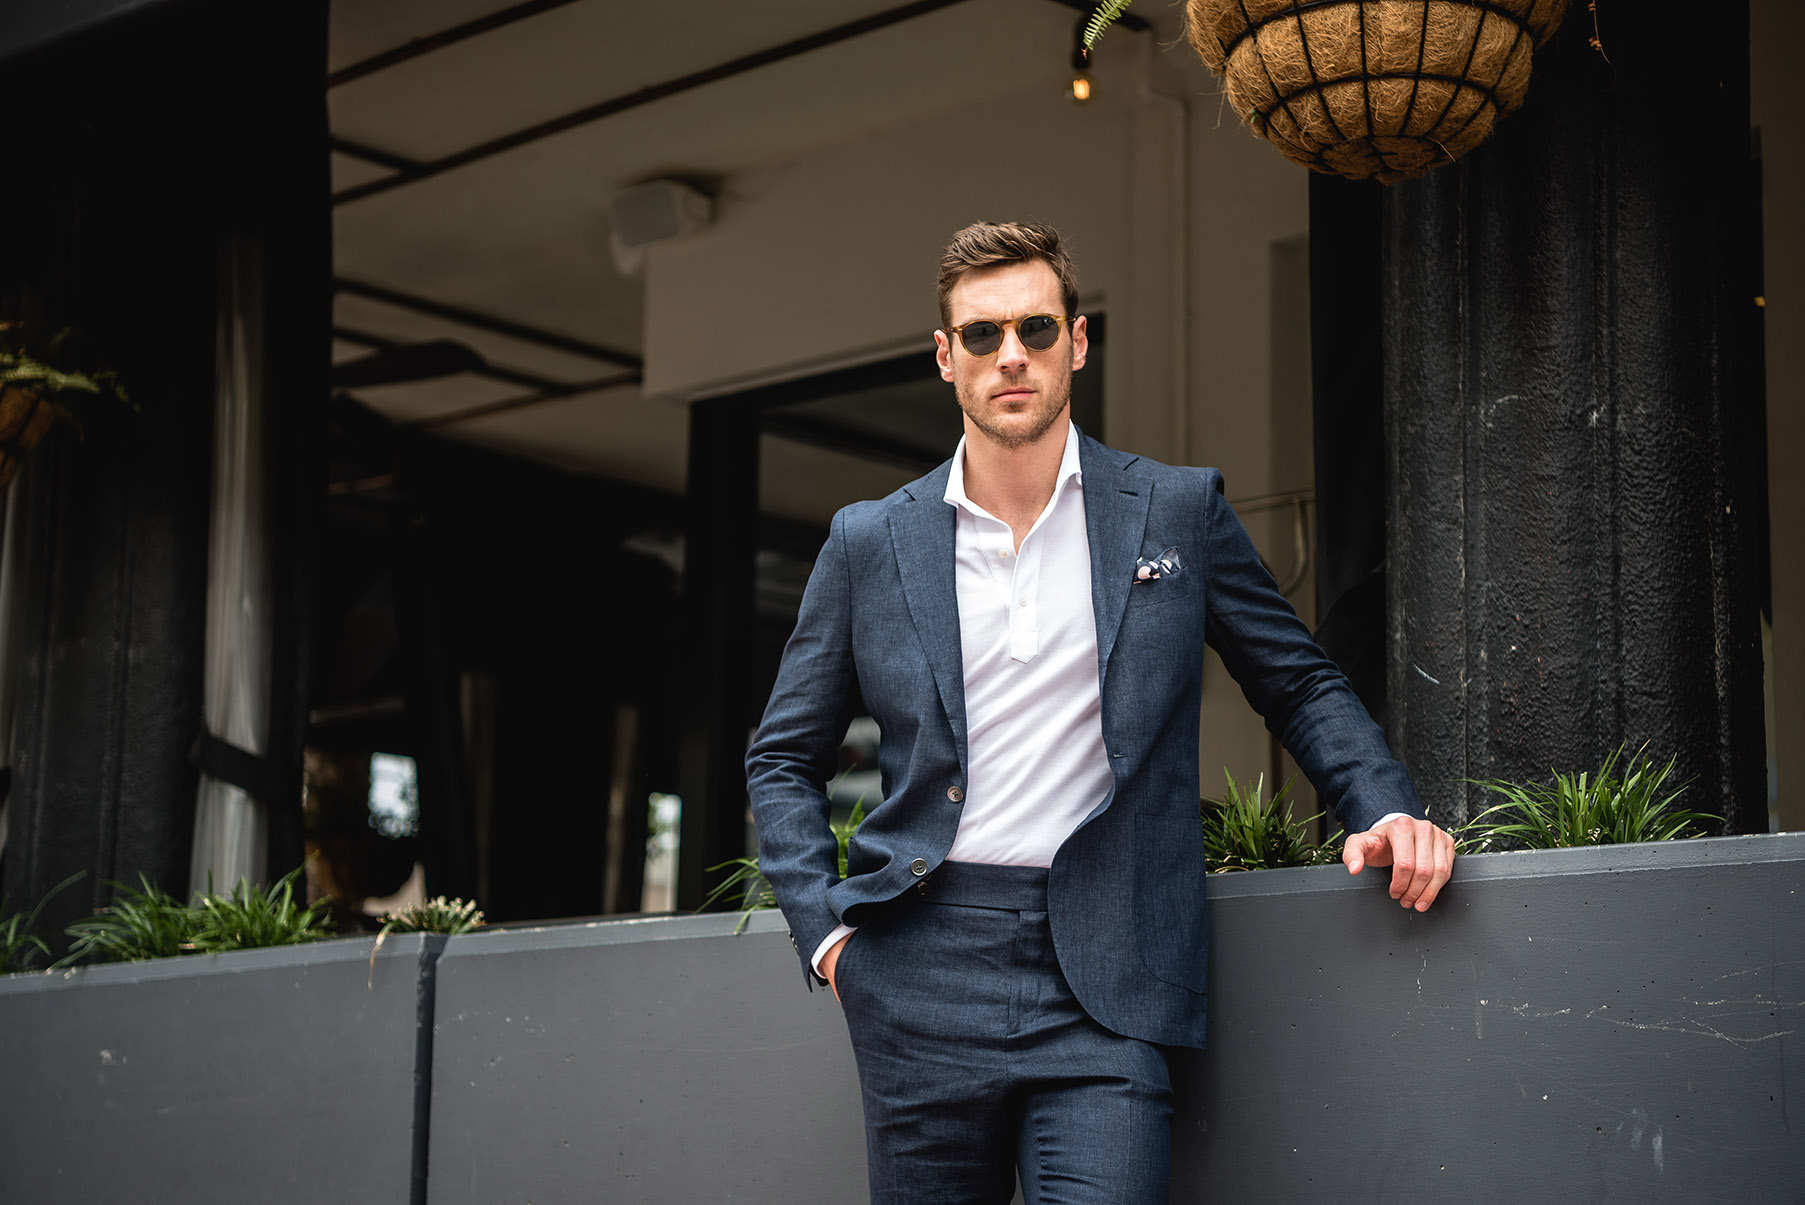 Research the best custom clothiers before choosing one